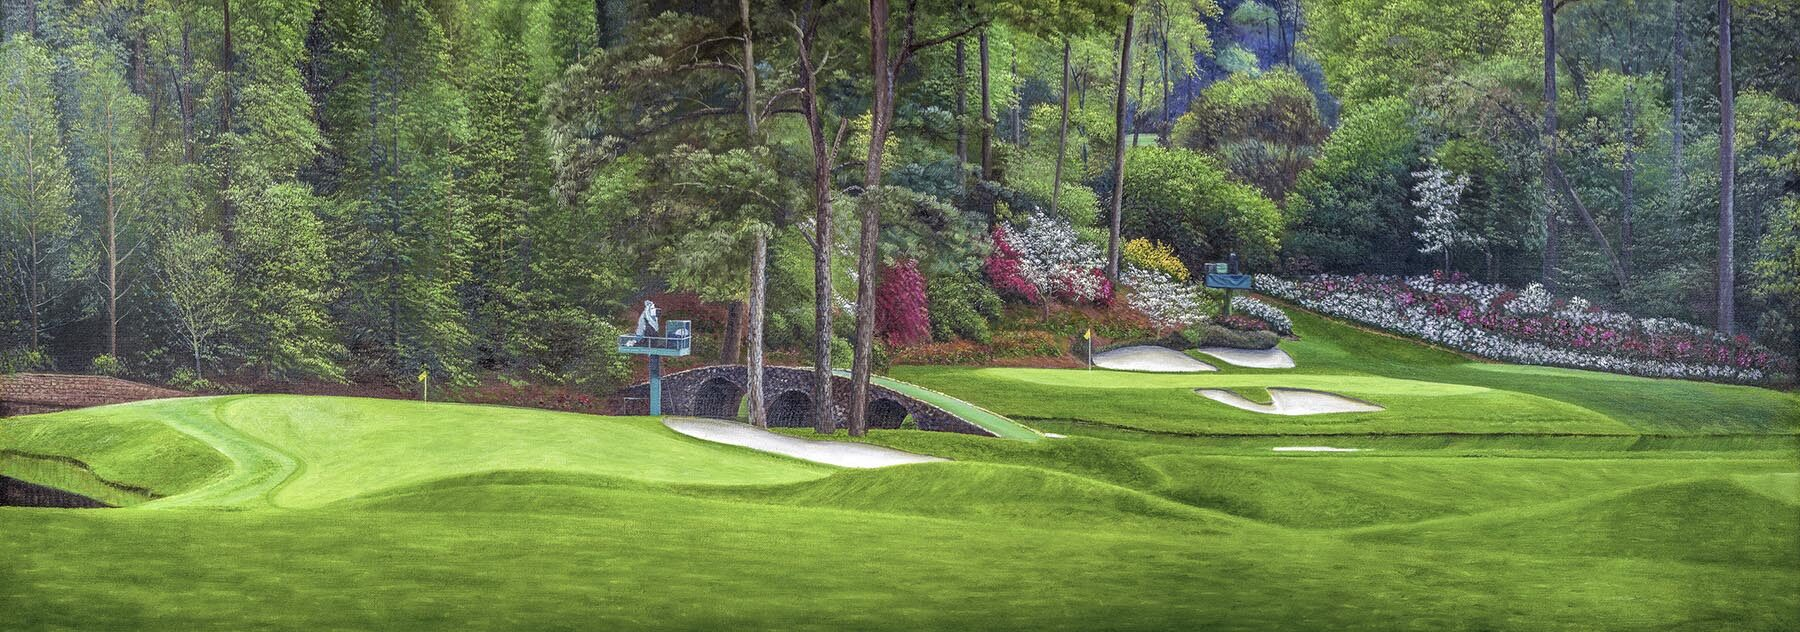 Augusta National Golf Holes 12 Golden Bell and 11 White Dogwood